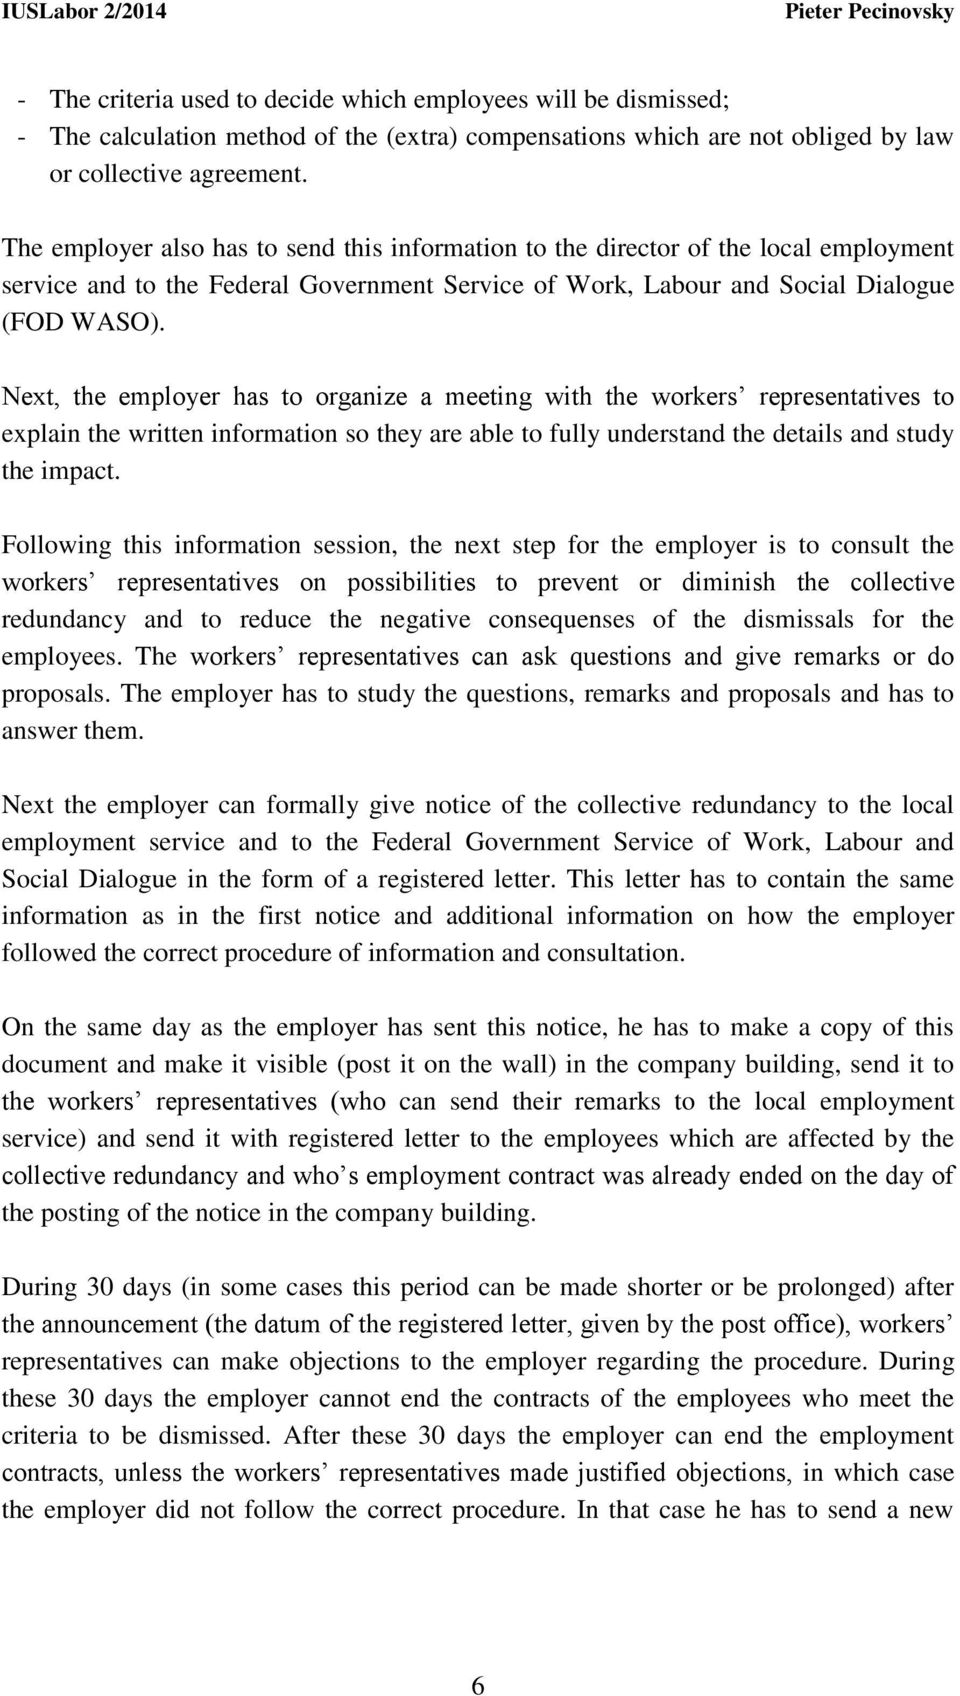 Next, the employer has to organize a meeting with the workers representatives to explain the written information so they are able to fully understand the details and study the impact.